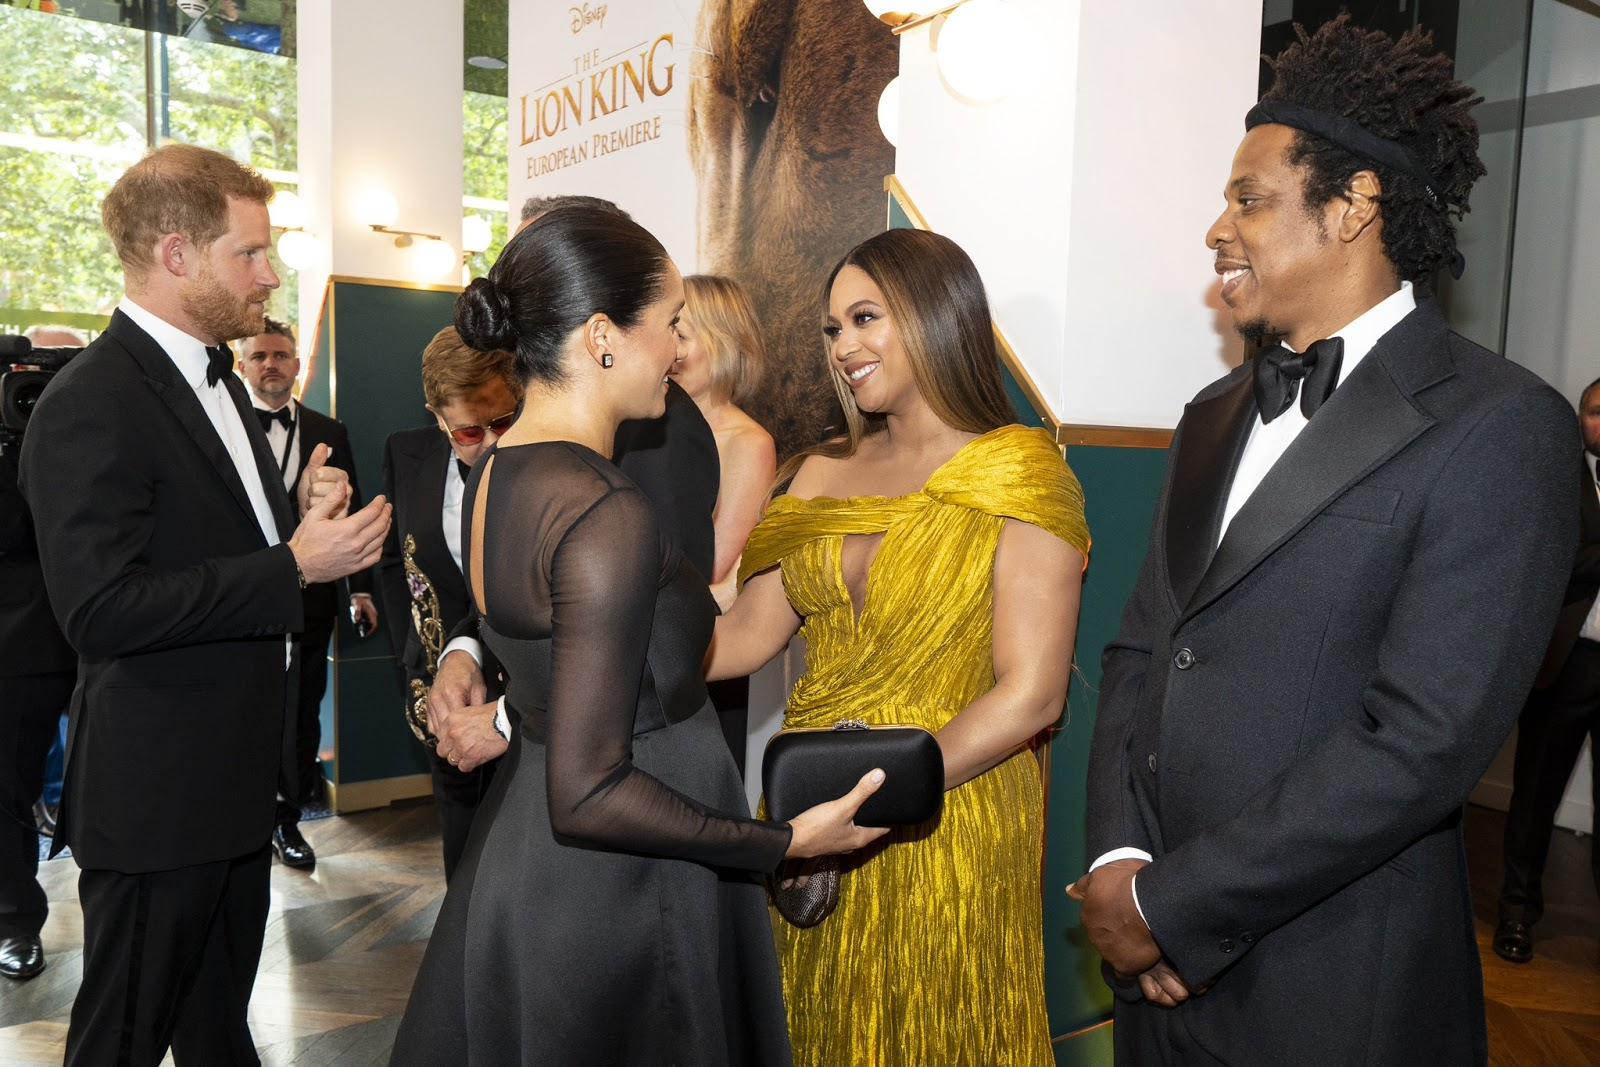 Meghan Markle meeting Beyoncé is the only thing that matters today